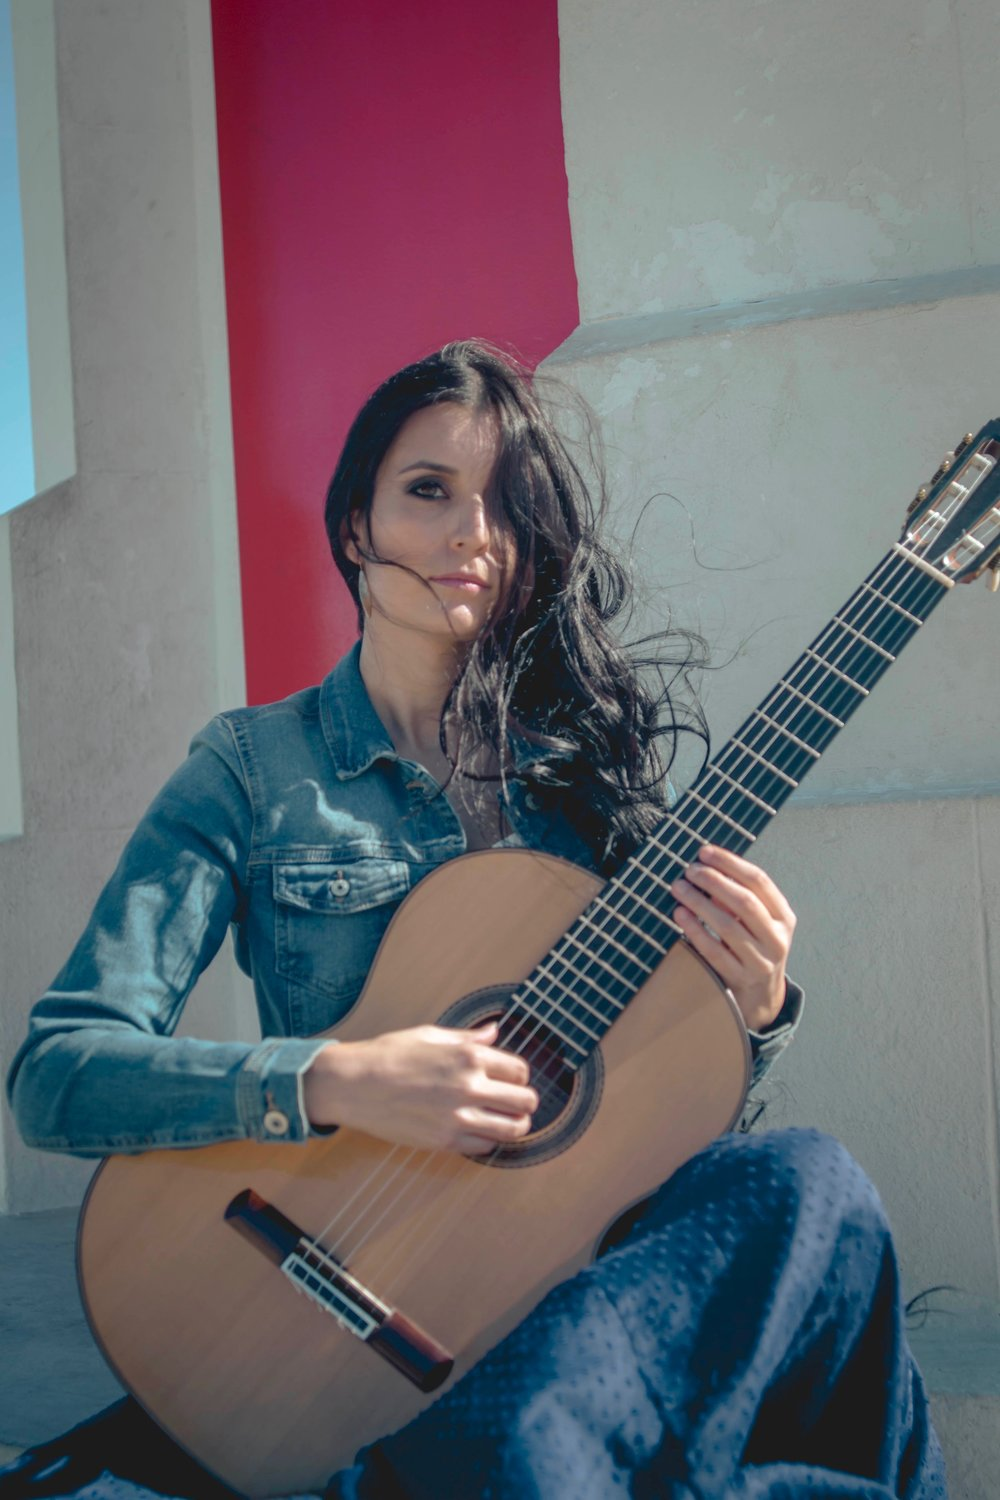 isabel martinez guitar 14.jpg